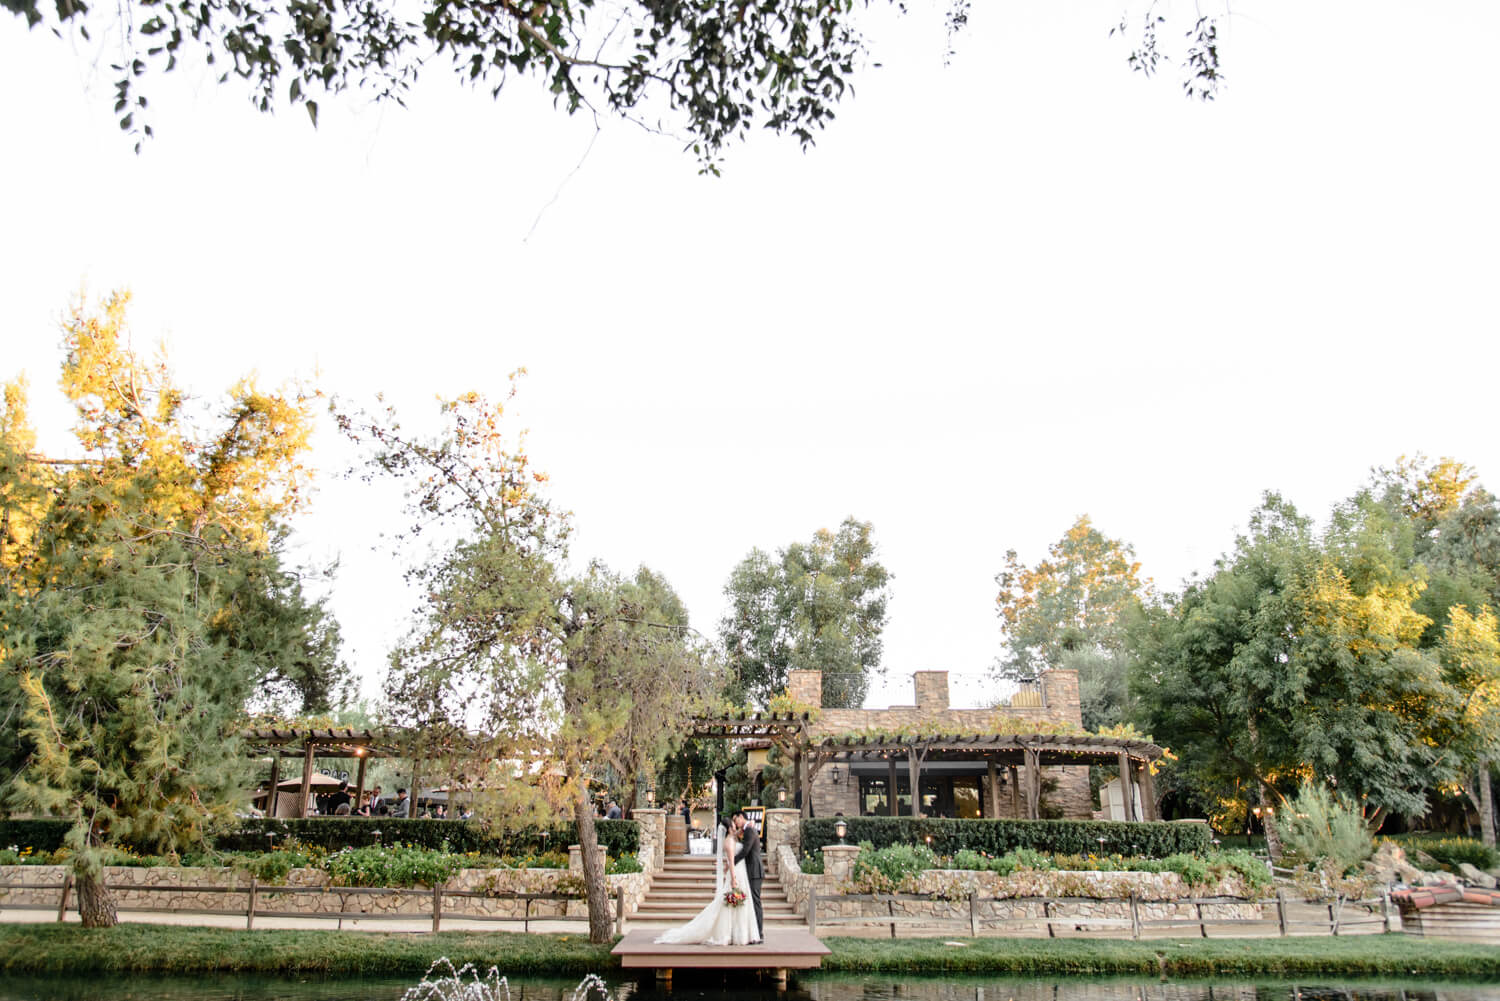 Everything you need to know before choosing Lake oak meadows as your wedding venue!